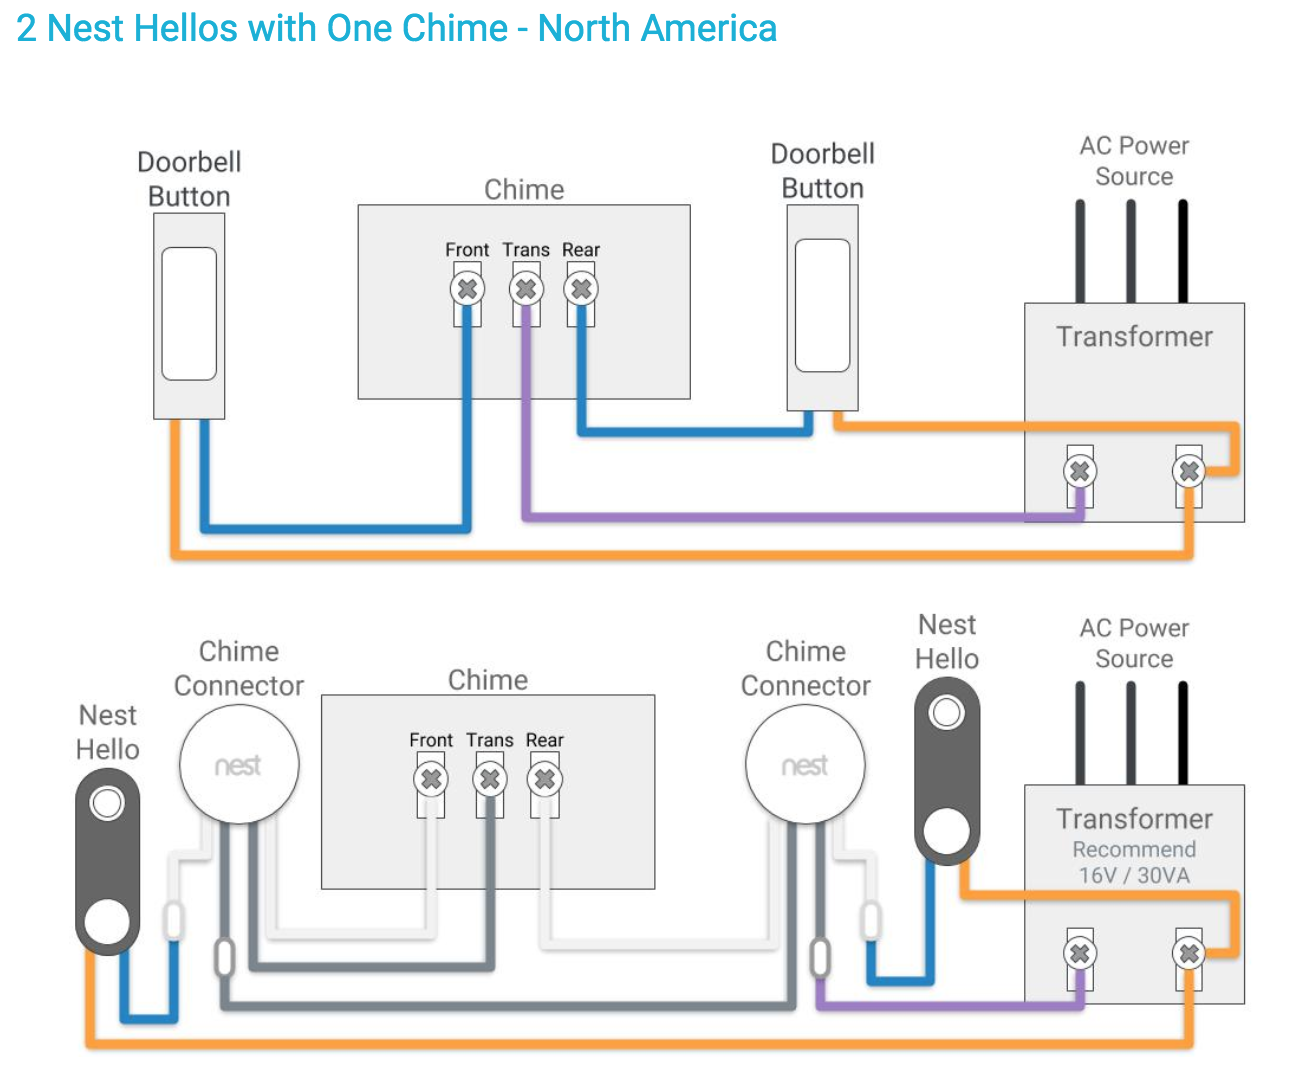 I Have 2 Nest Hellos And I Would Like Both To Ring On The Same Chime But One Is On A Power Adapter Google Nest Community